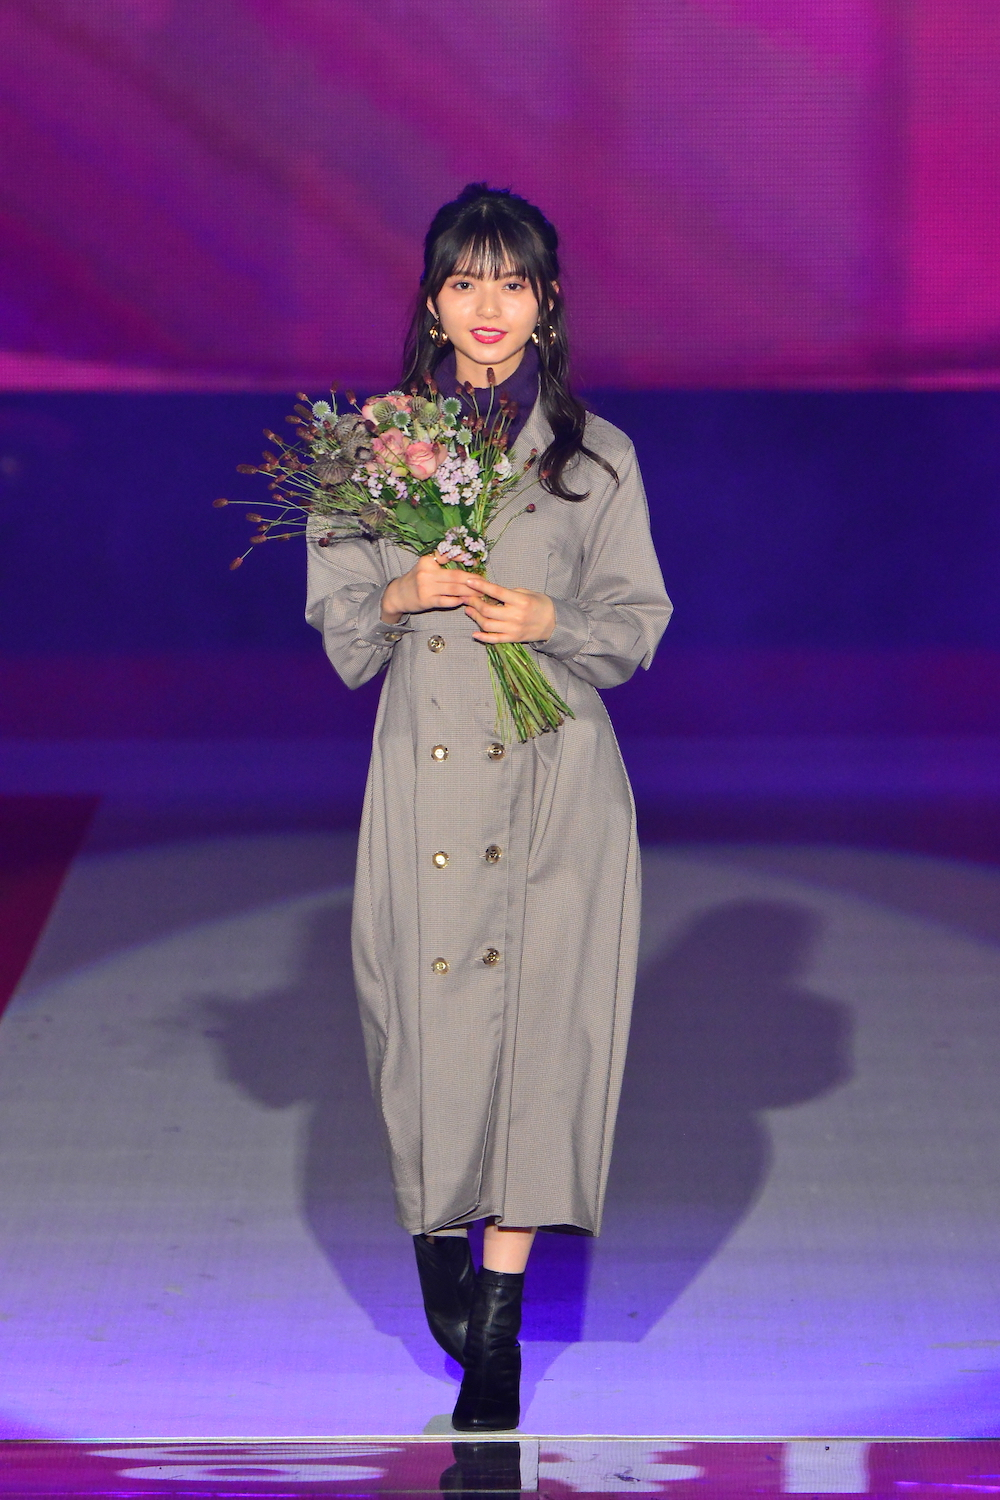 齋藤飛鳥 乃木坂46(GirlsAward 2019 AUTUMN/WINTER)